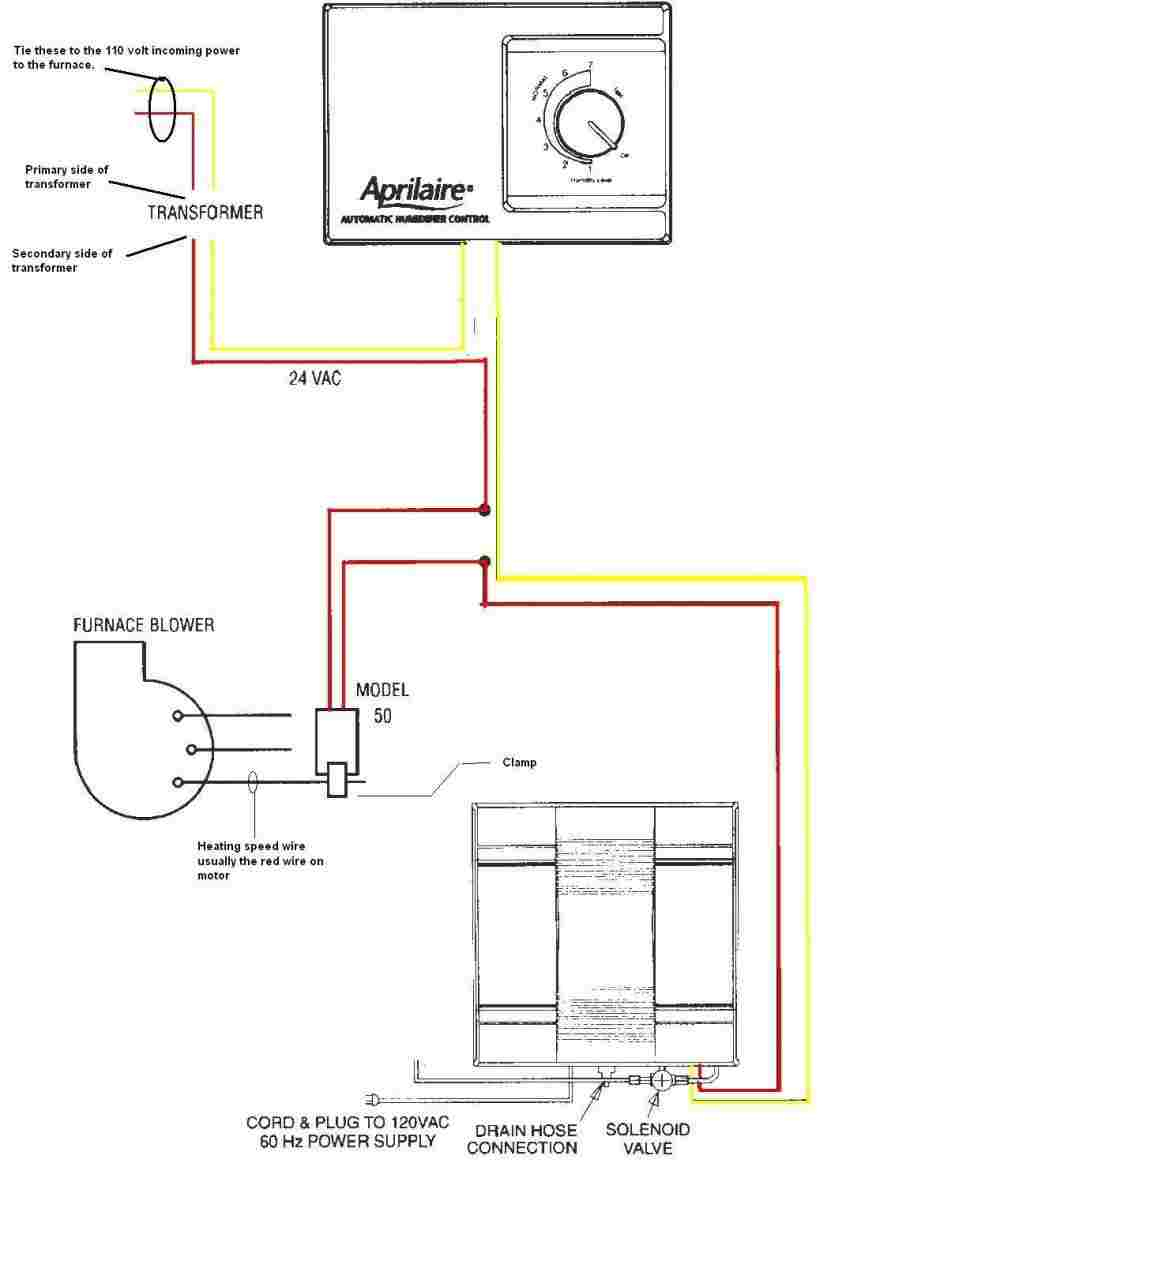 Wiring Diagram For Aprilaire 700 Free Download - Wiring Diagram - Aprilaire 700 Wiring Diagram Nest